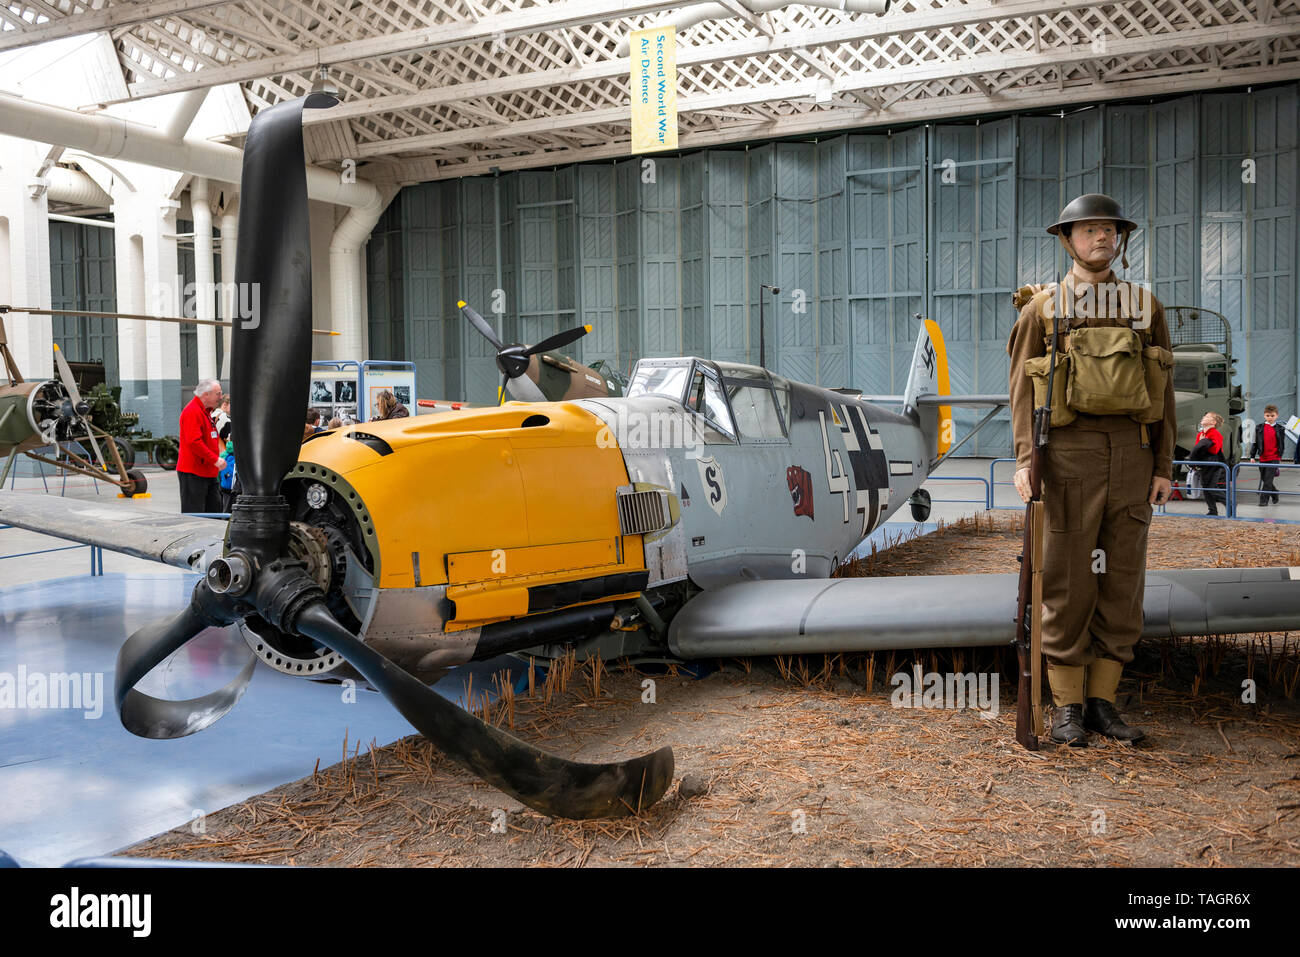 World War Two Messerschmitt Bf 109 German fighter plane at the Imperial War Museum, Duxford, Cambridgeshire, UK - Stock Image